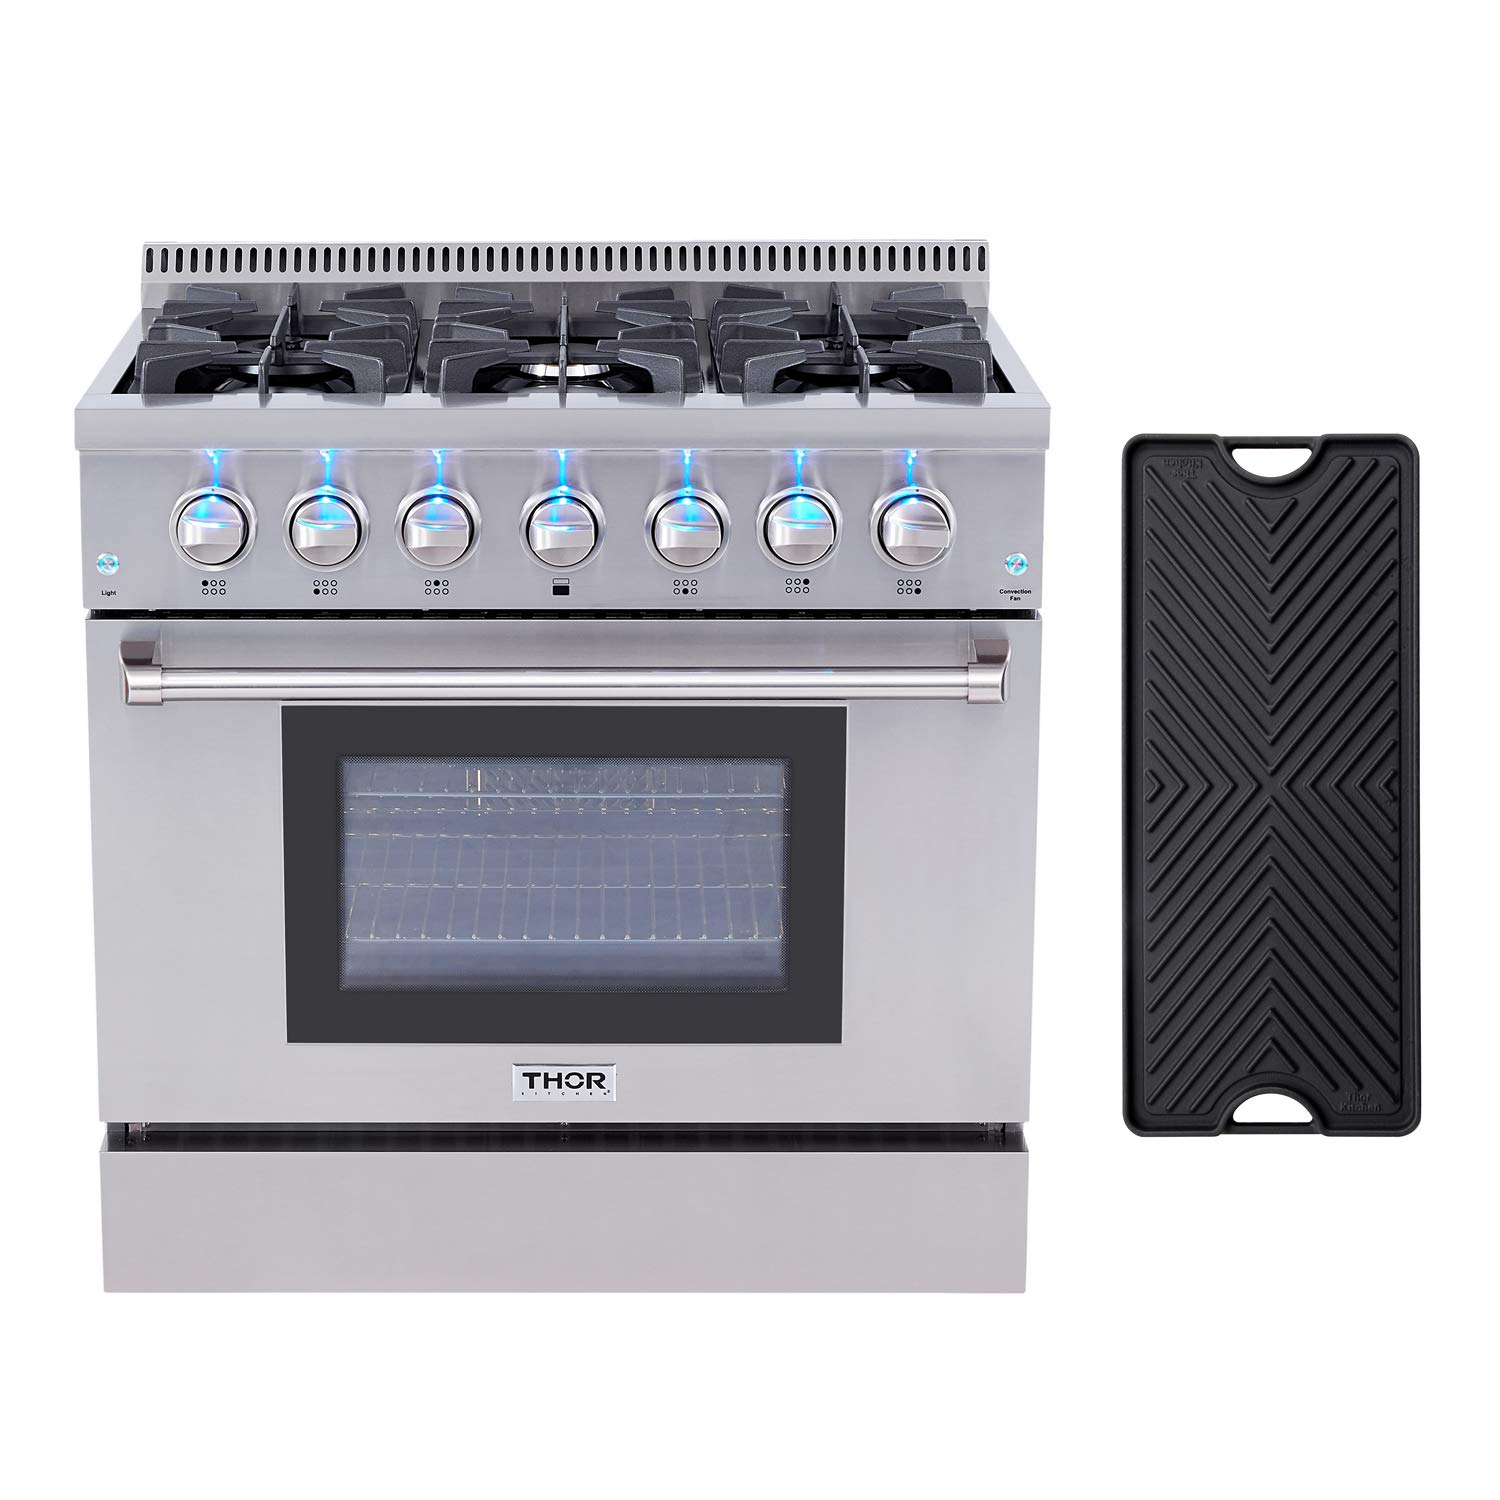 Thor Kitchen HRD3606U 36'' Dual Fuel Range Freestanding Professional Style with 5.2 cu.ft Convection Oven in Stainless Steel, 6 Burners, Cast-Iron Reversible Griddle